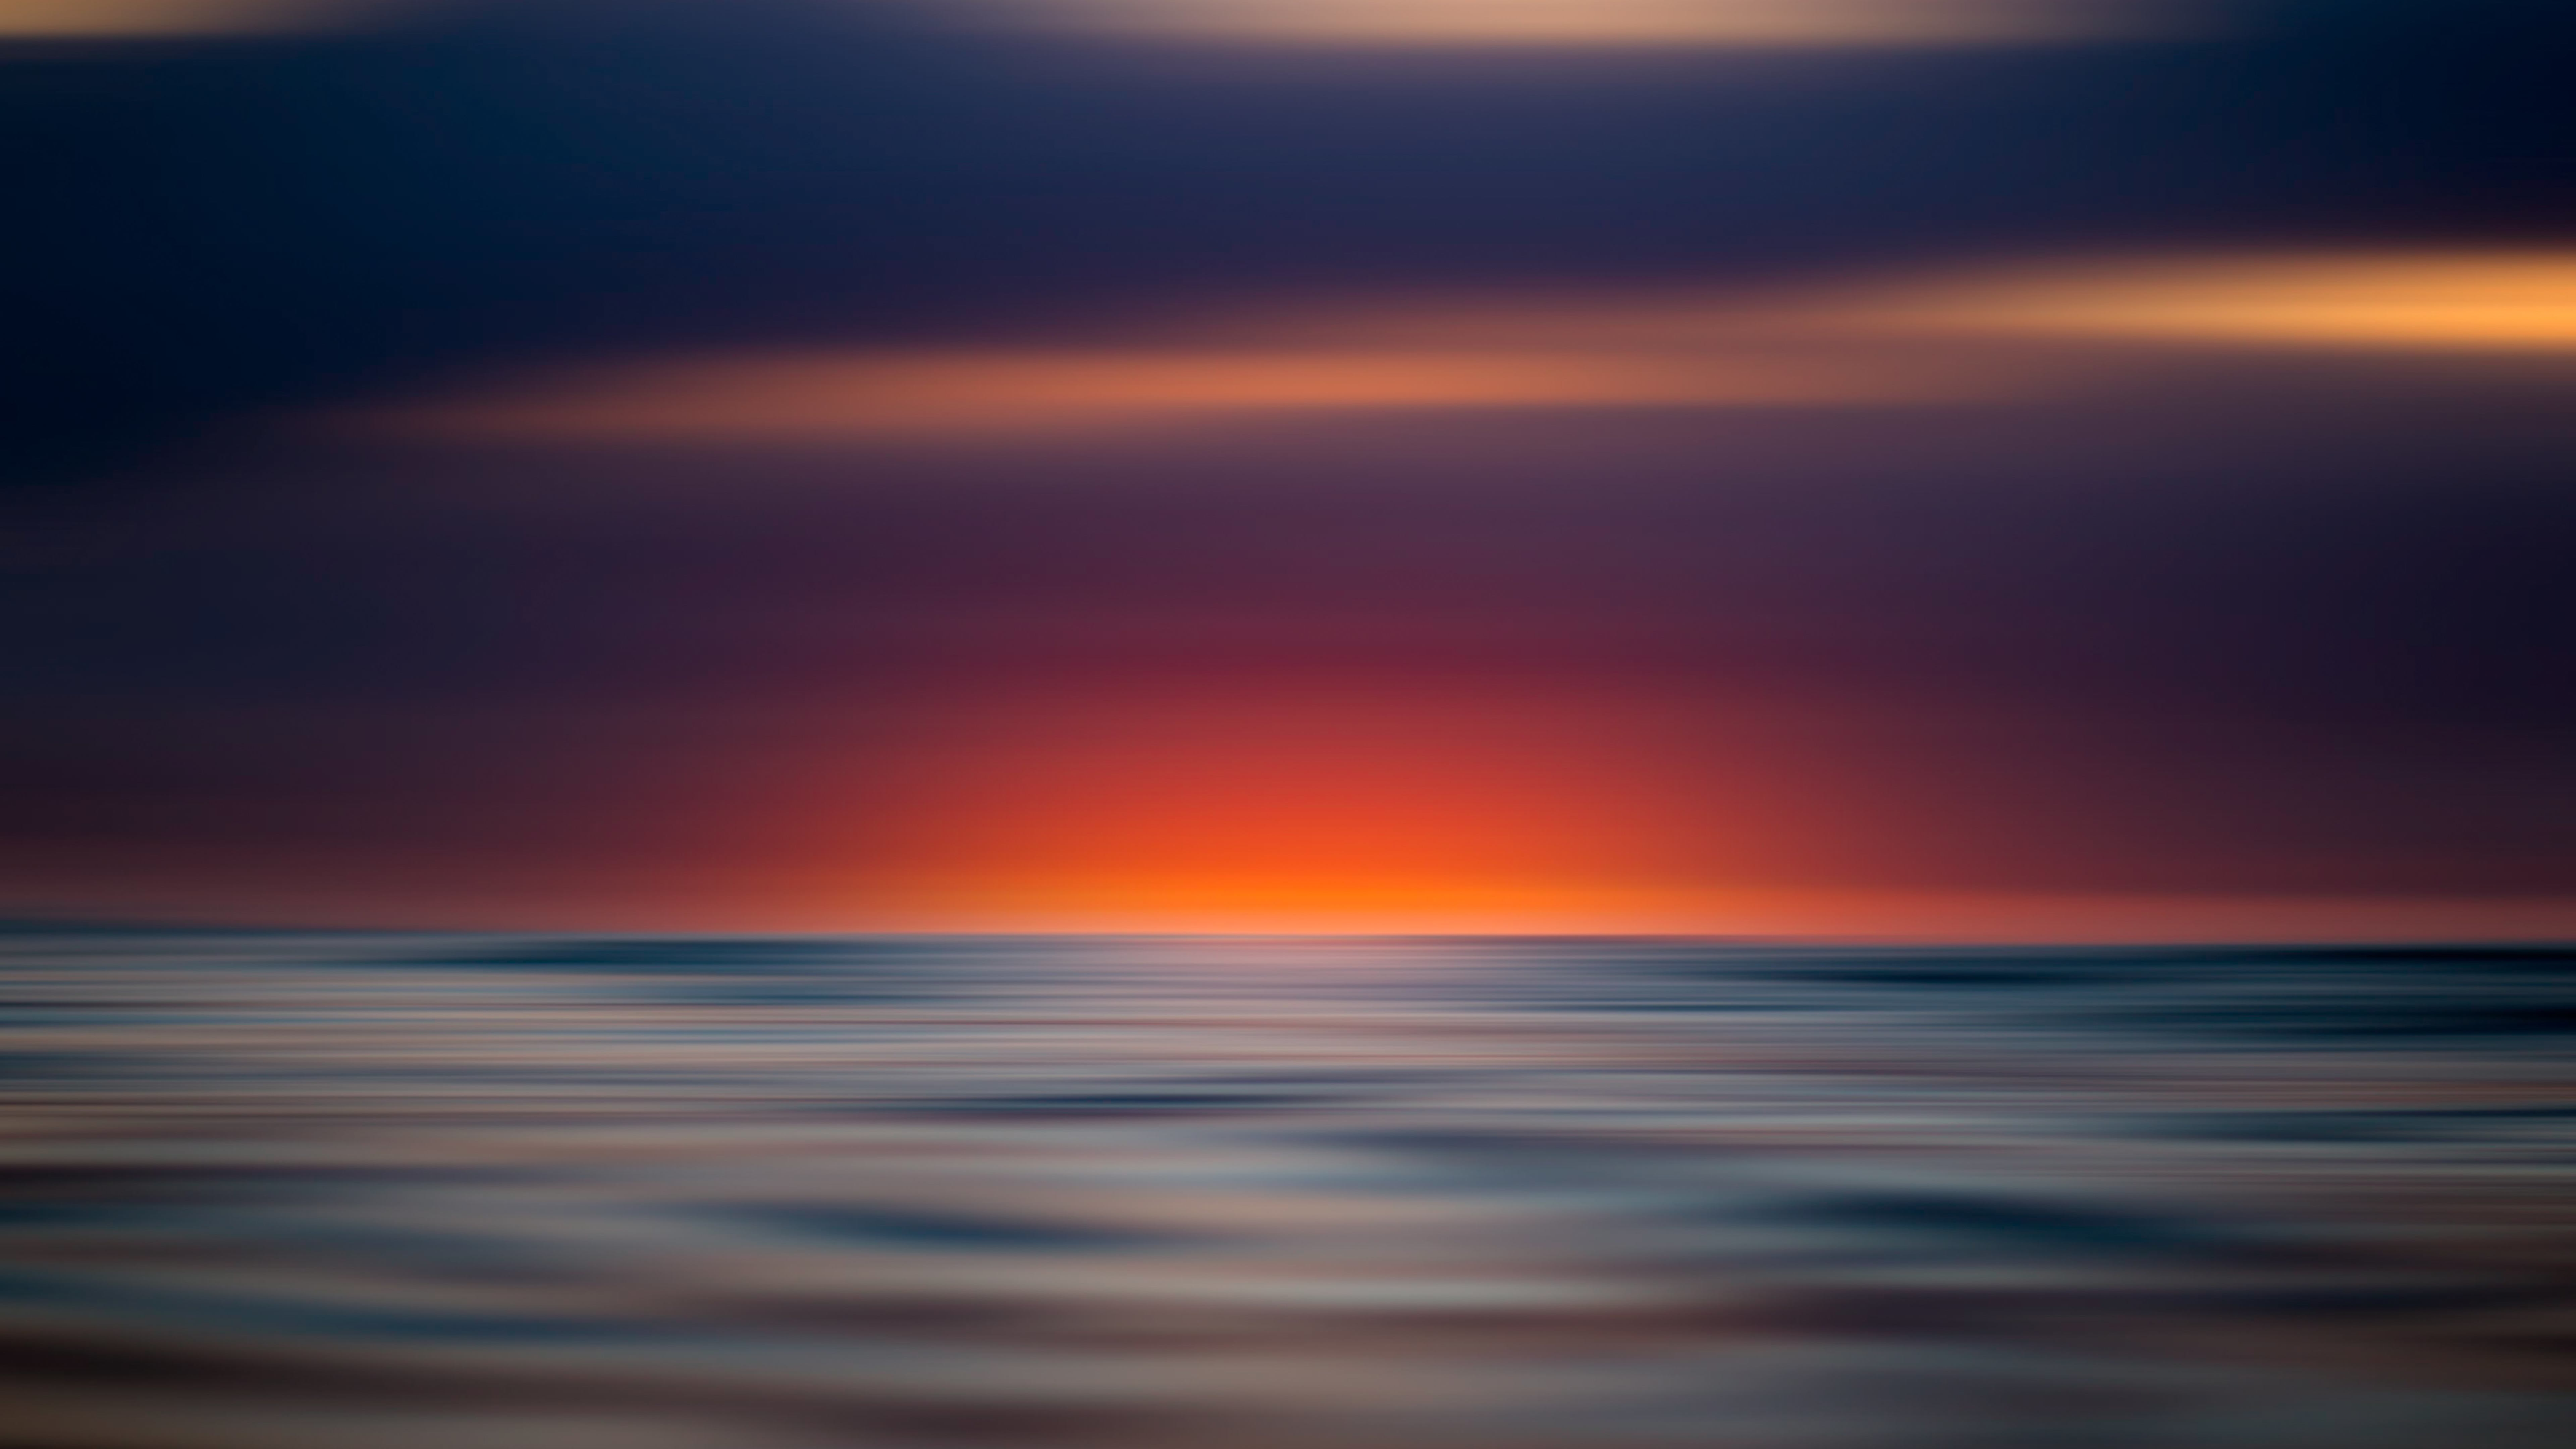 7680x4320 7680x4320 Sunset View Blur 8k 8k HD 4k Wallpapers, Images ...